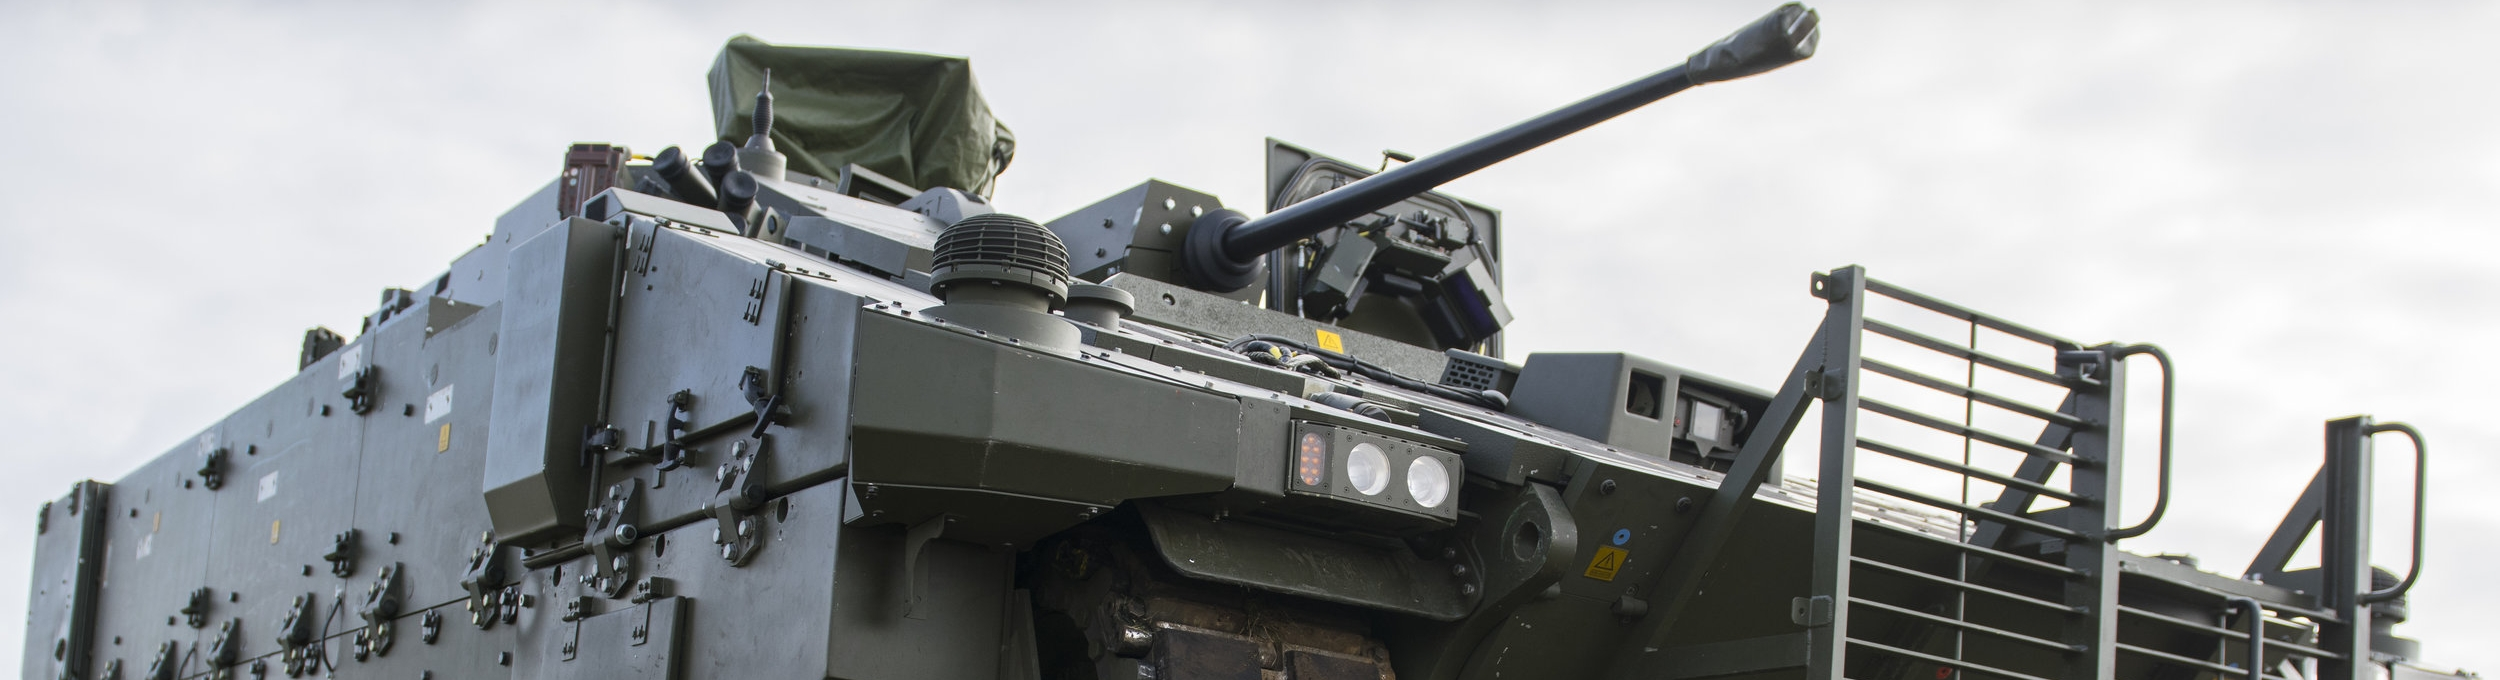 Defence - We're acknowledged as world leaders in coatings for military head-up and helmet-mounted displays, and our laser protection filters safeguard the occupants of military vehicles from high-powered lasers used on the battlefield.